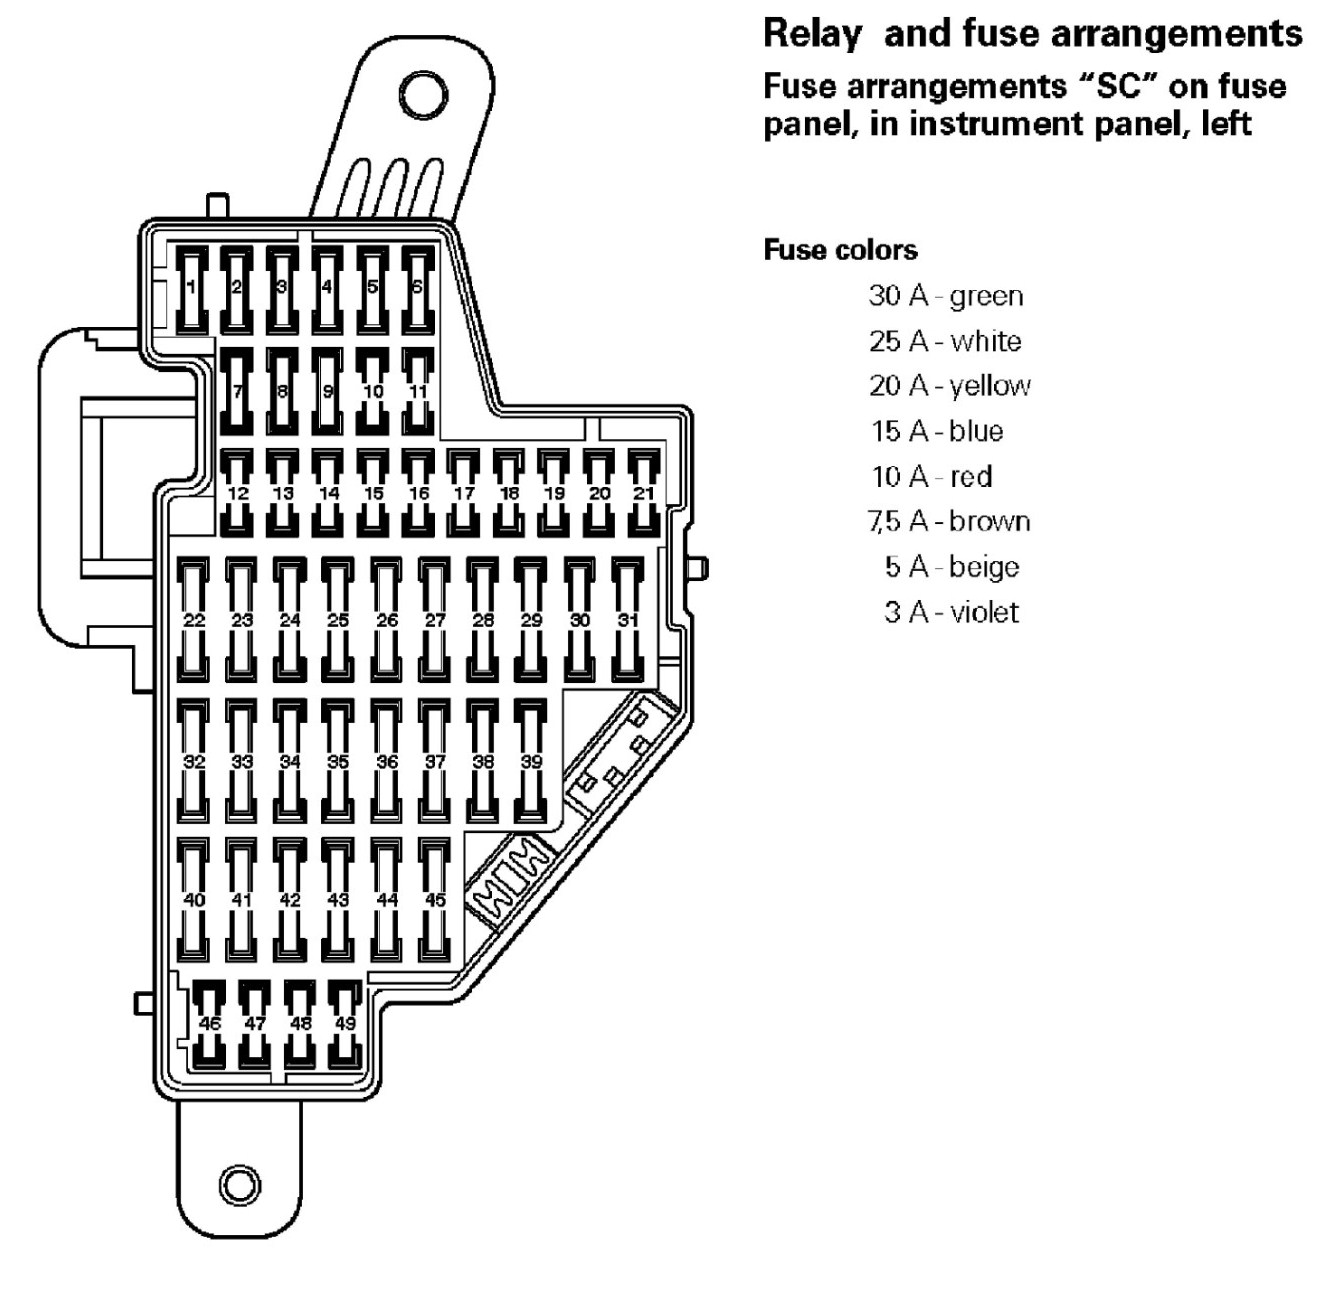 2006 Vw Jetta Fuse Box Diagram Image Details 2006 Jetta GLI Fuse Diagram  2006 Jetta Tdi Fuse Diagram